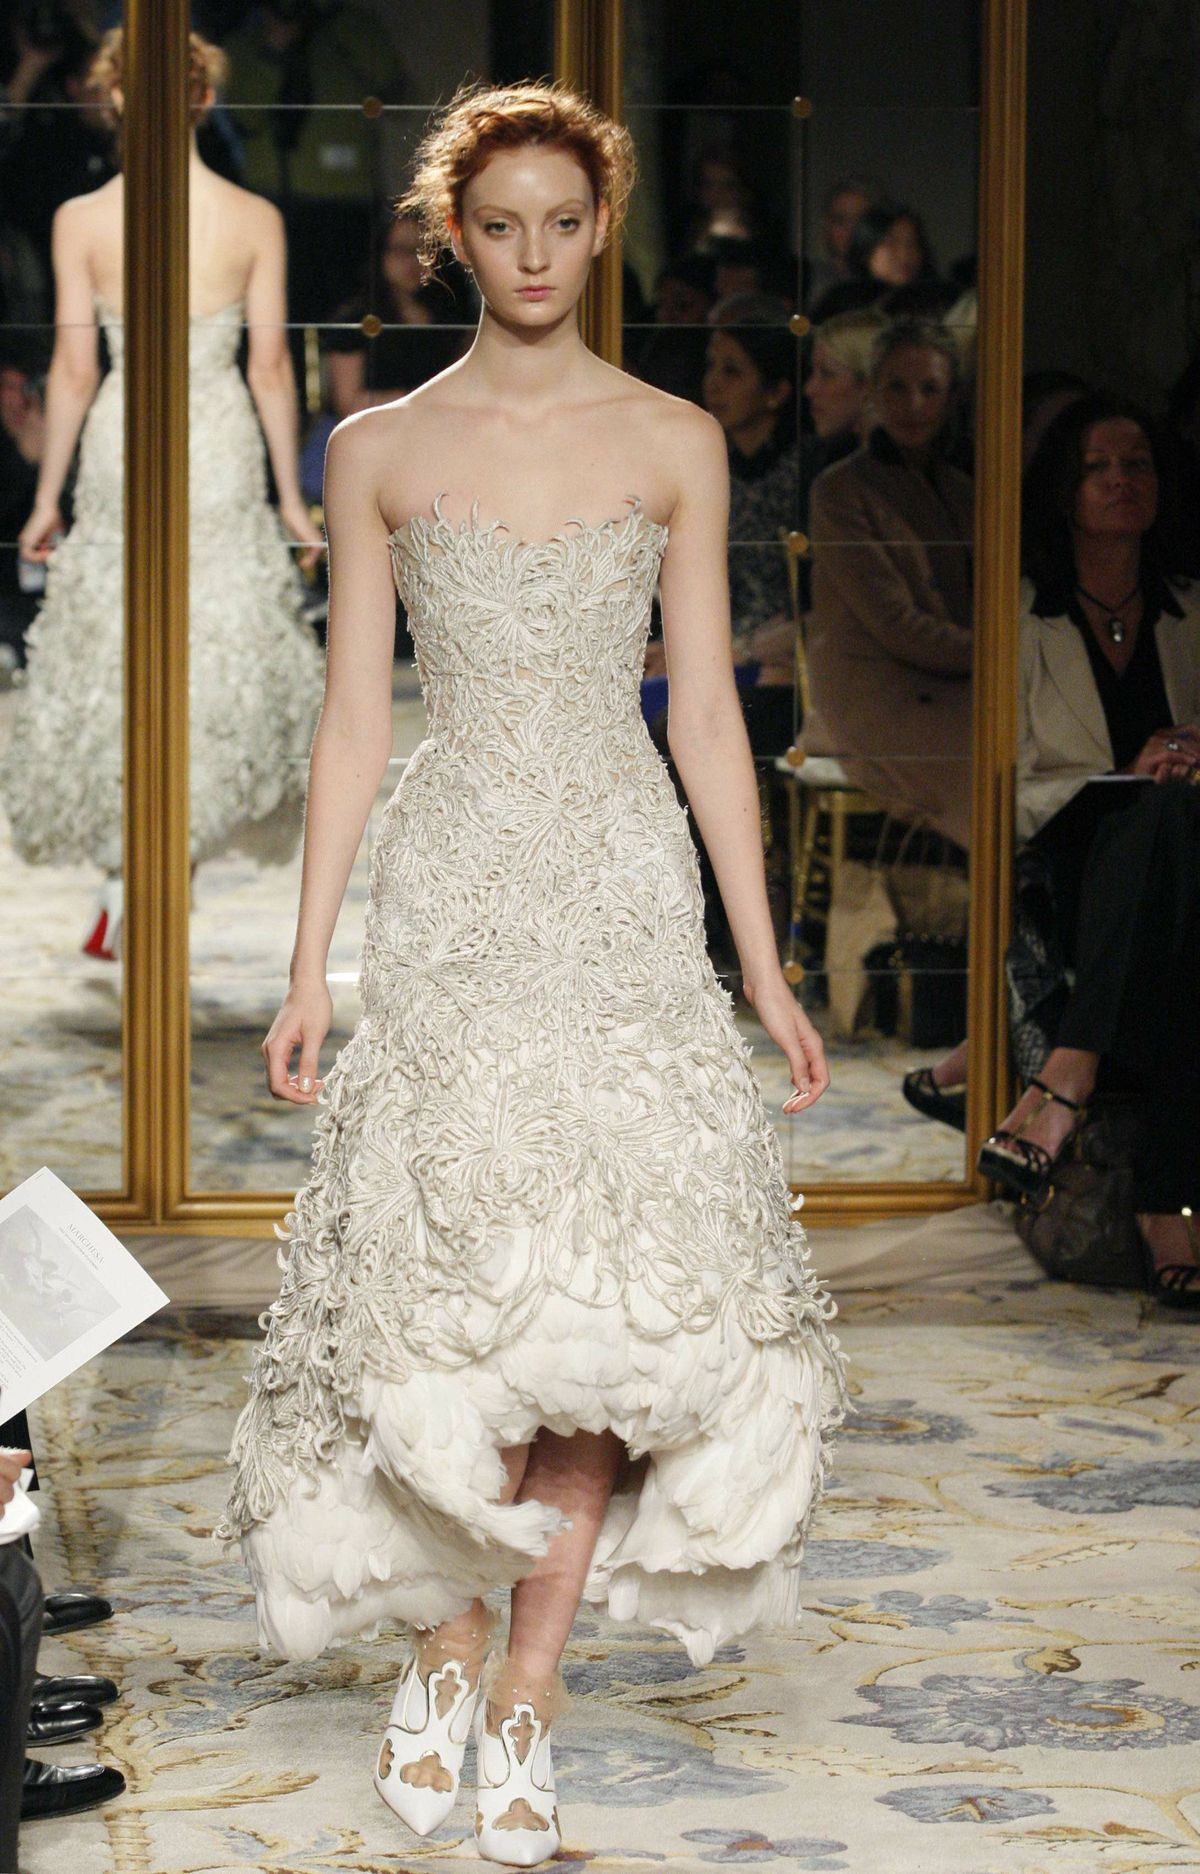 There was a lot of Alexander McQueen in this Marchesa collection; gold painted feathers, capped sleeve bodices, skeletal detailing. But all pleasure no pain.